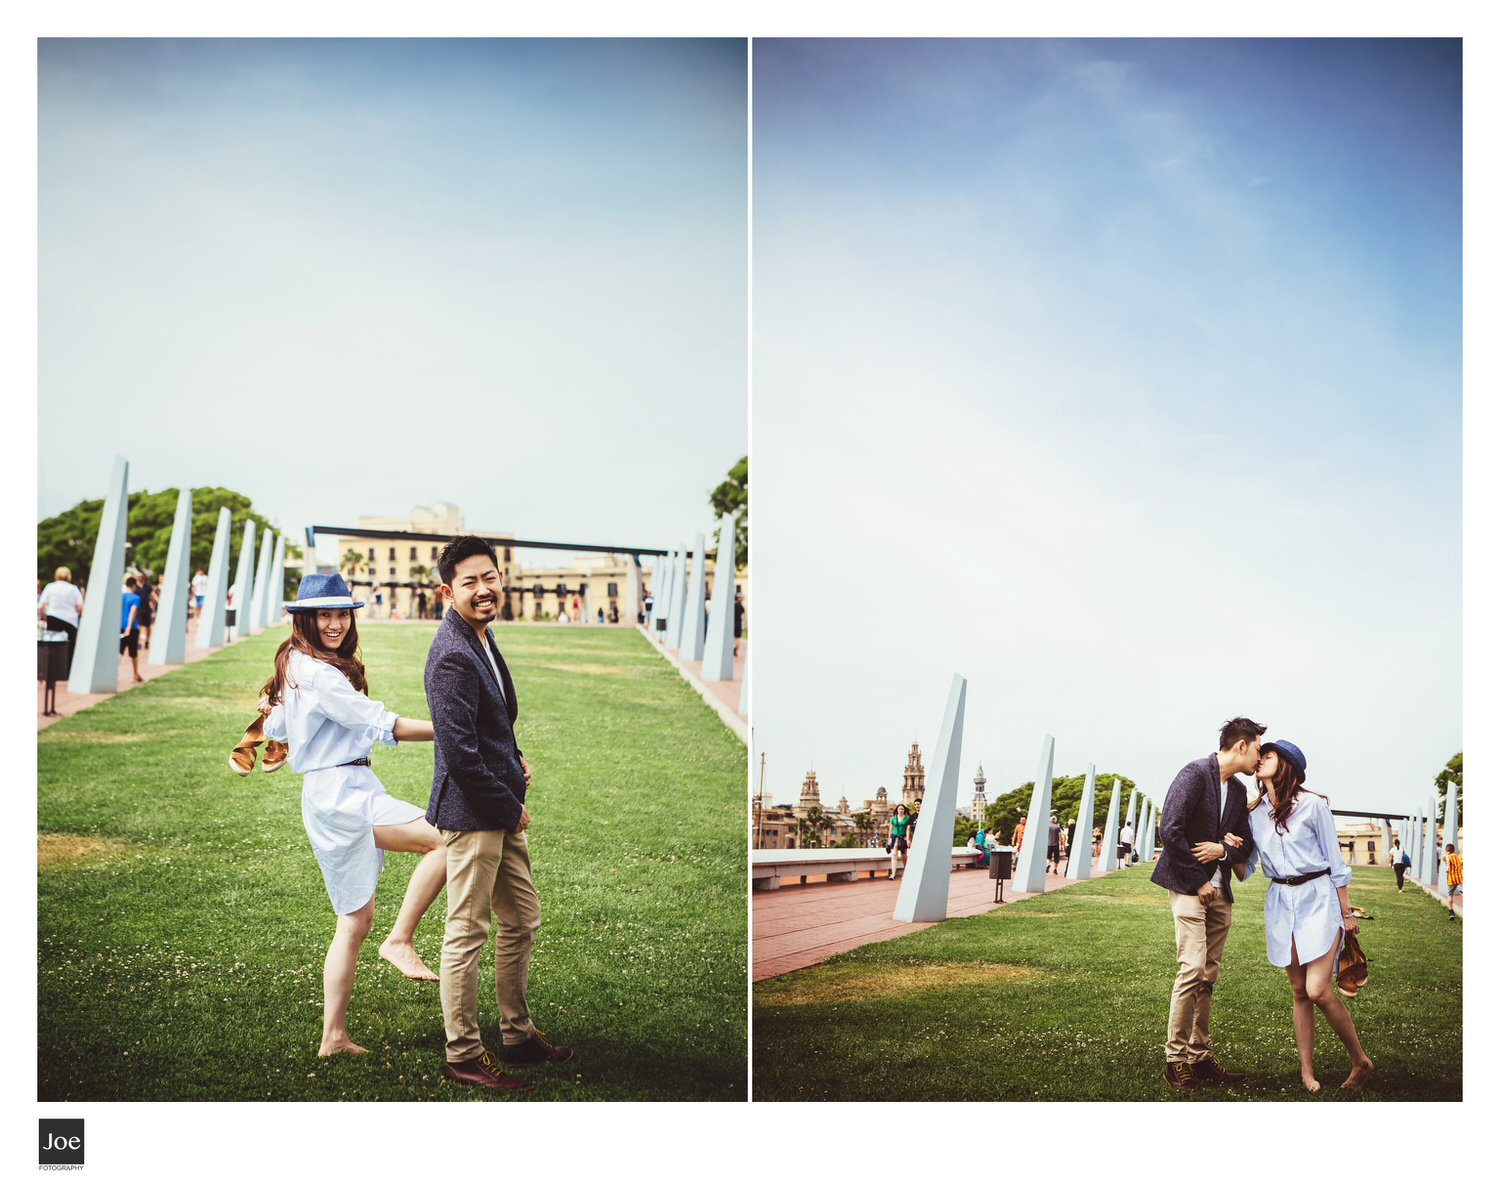 joe-fotography-83-barcelona-placa-de-lictineo-pre-wedding-liwei.jpg